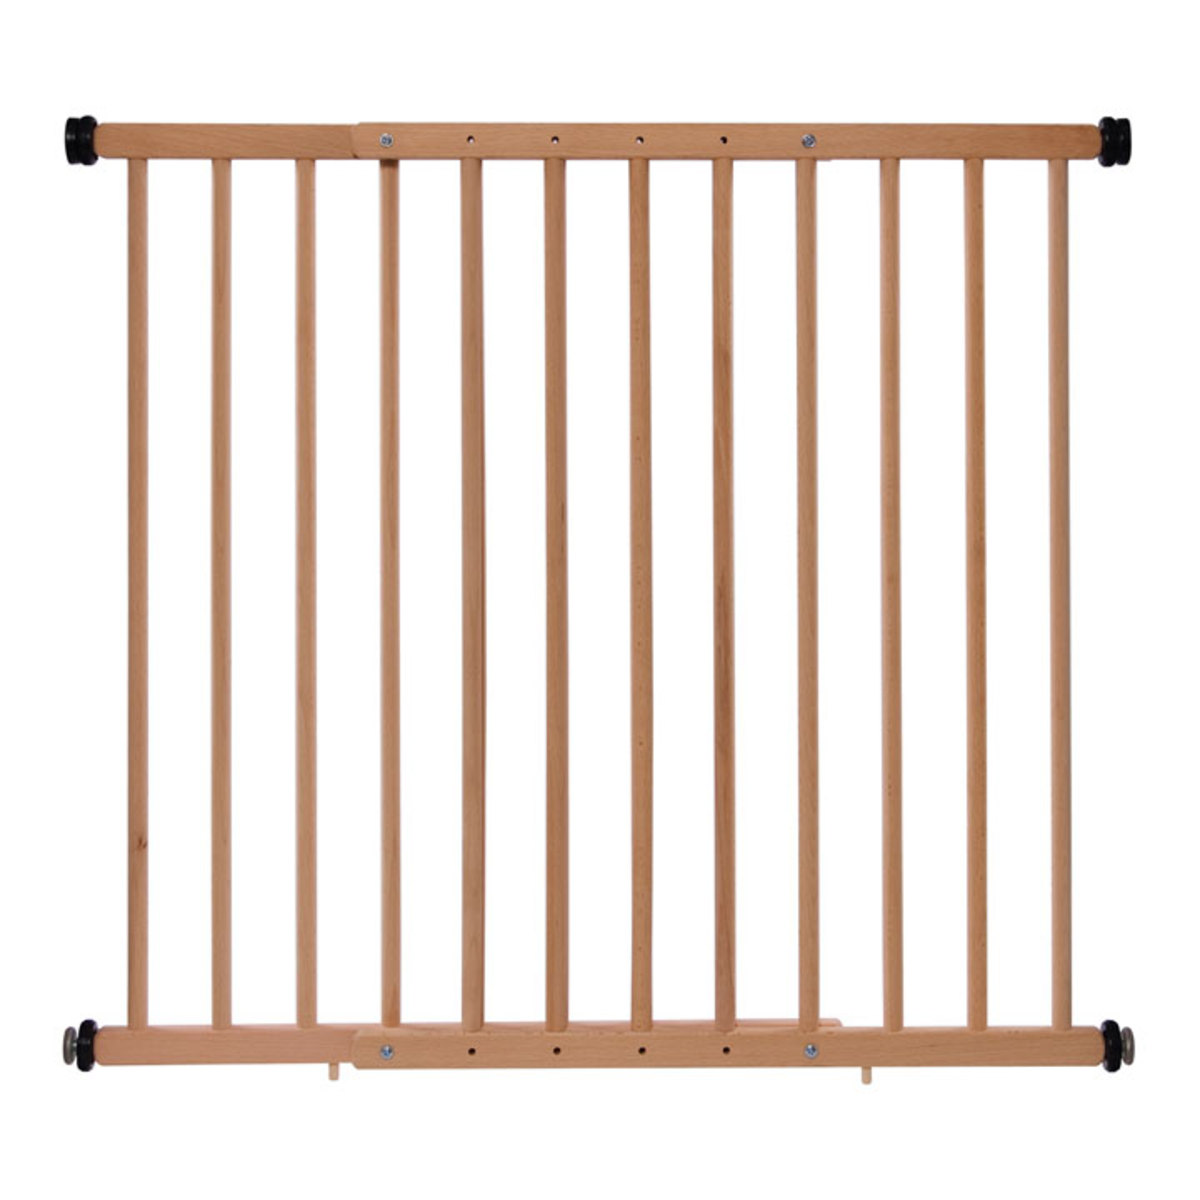 Barriere securite pas cher for Barriere de jardin pas cher